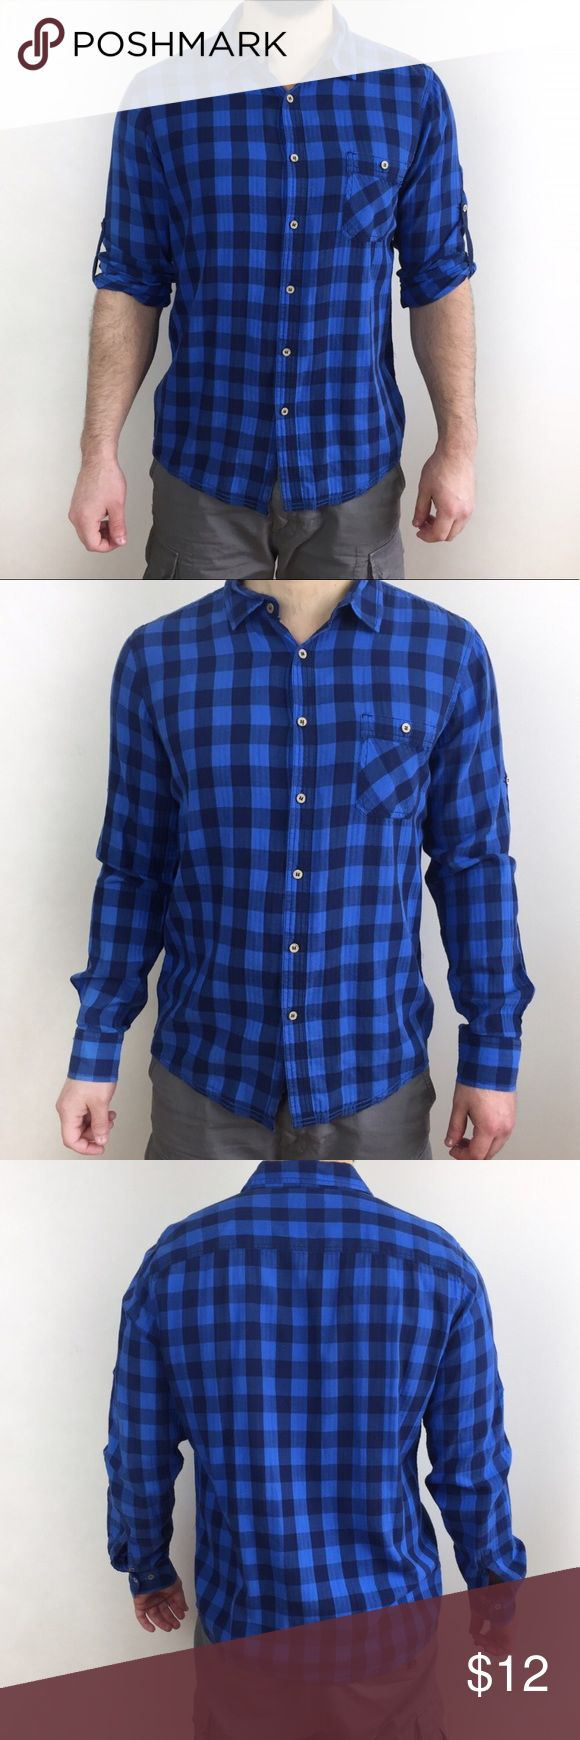 2x$15 PULL & BEAR ZARA PLAID SHIRT PULL & BEAR ZARA SISTER COMPANY PLAID SHIRT IN SIZE EU XL, Fits like a Large USA. Look and feel of pre loved but in great condition, no holes or stains. Bundle it with the other ones available for. 2x$15 Zara Shirts